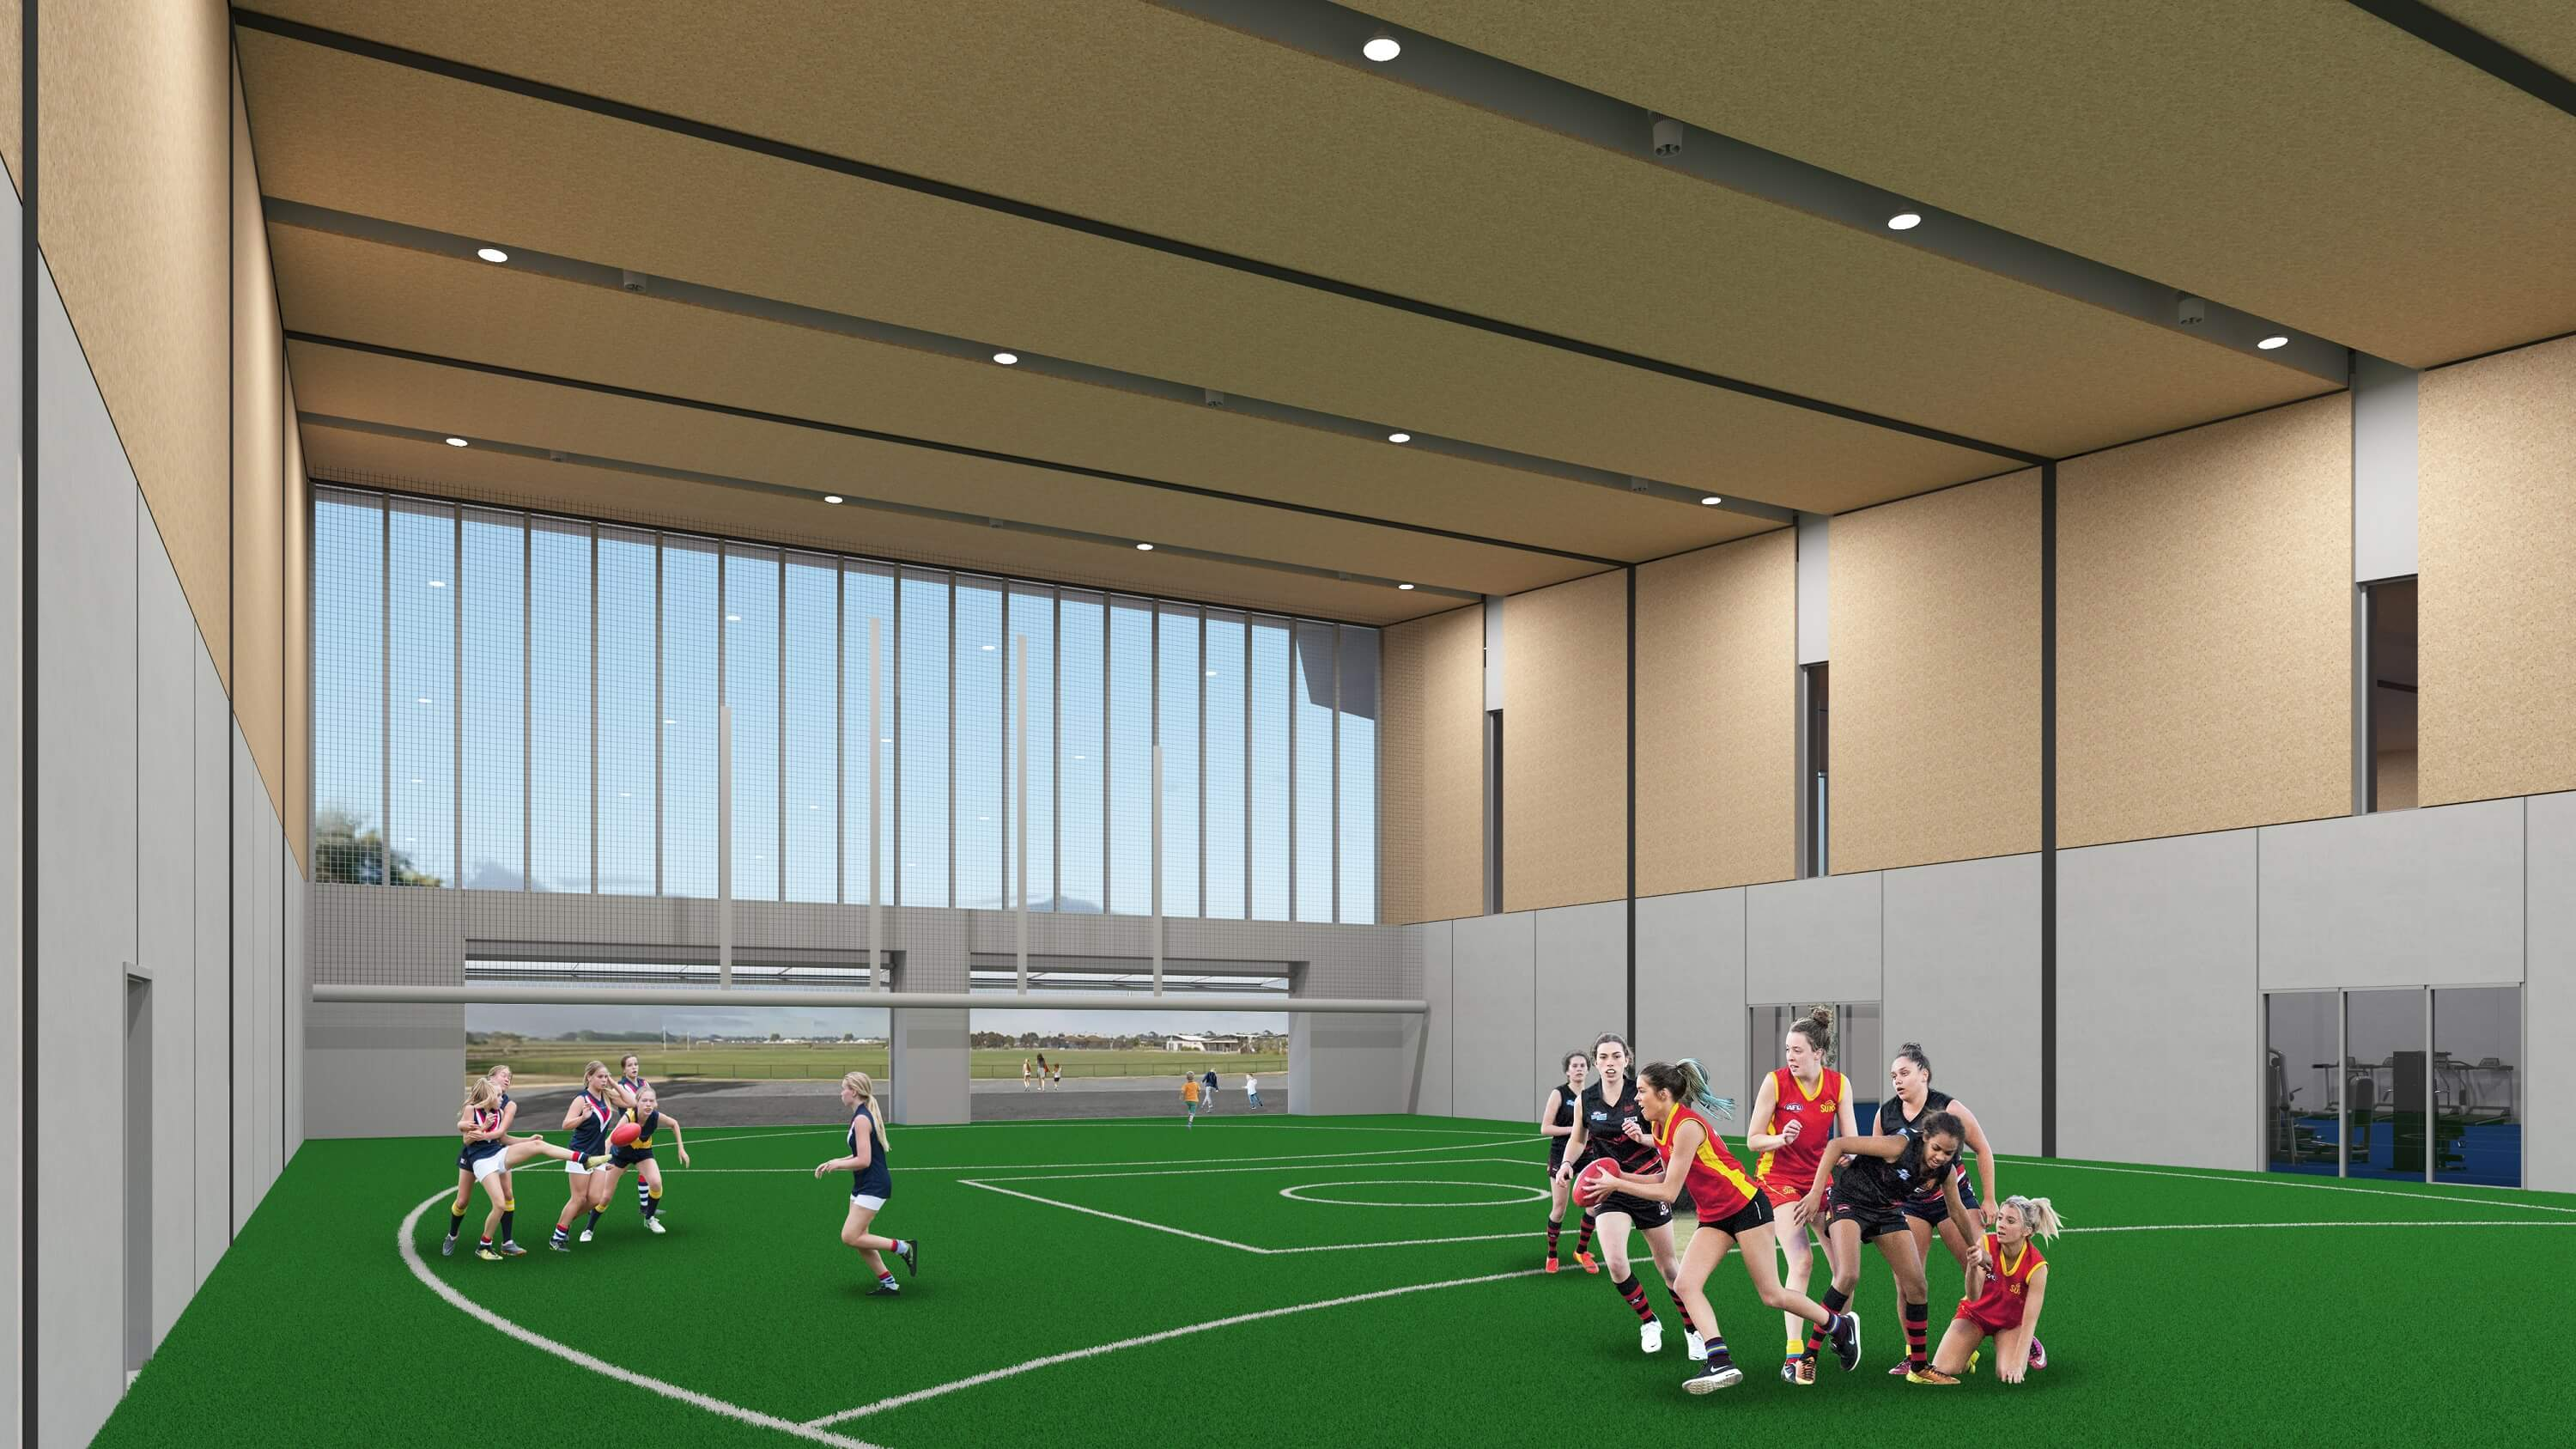 Artist impression of the indoor training space. Please note, this is subject to chance during the detailed design phase.